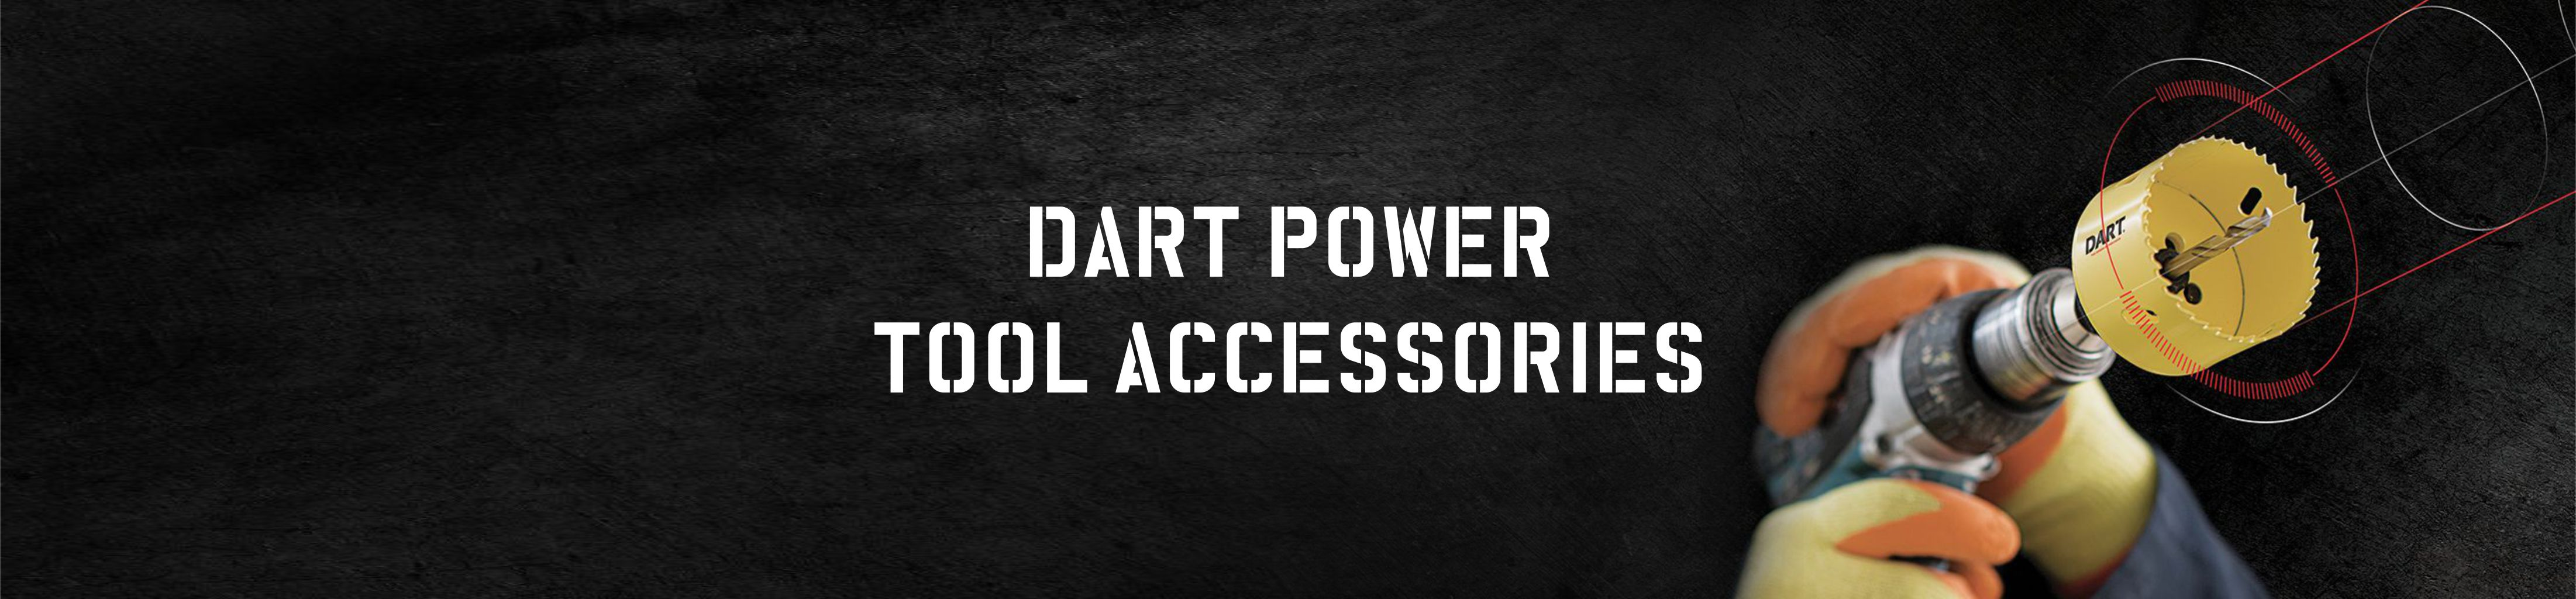 DART Power Tool Accessories